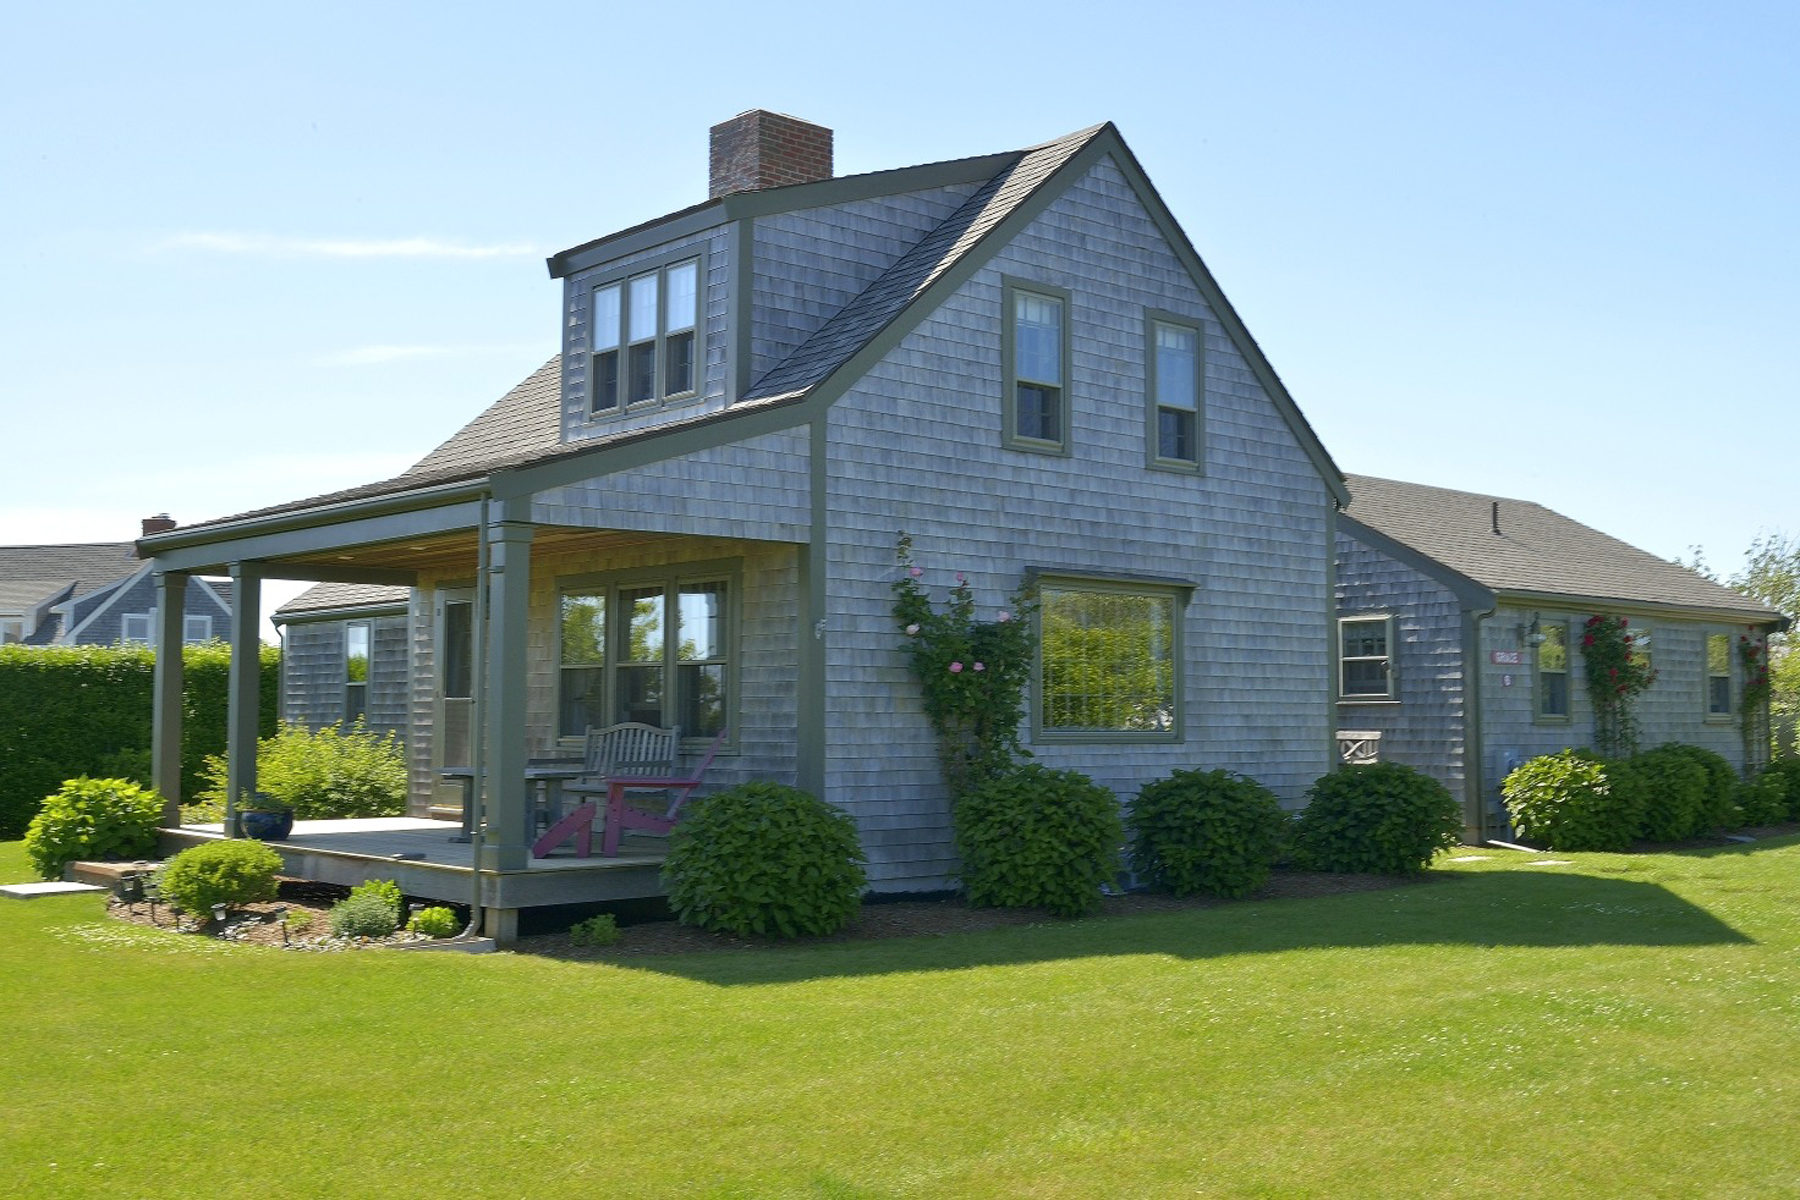 Single Family Home for Sale at Grace Cottage 6 Stone Post Way Siasconset, Massachusetts 02564 United States